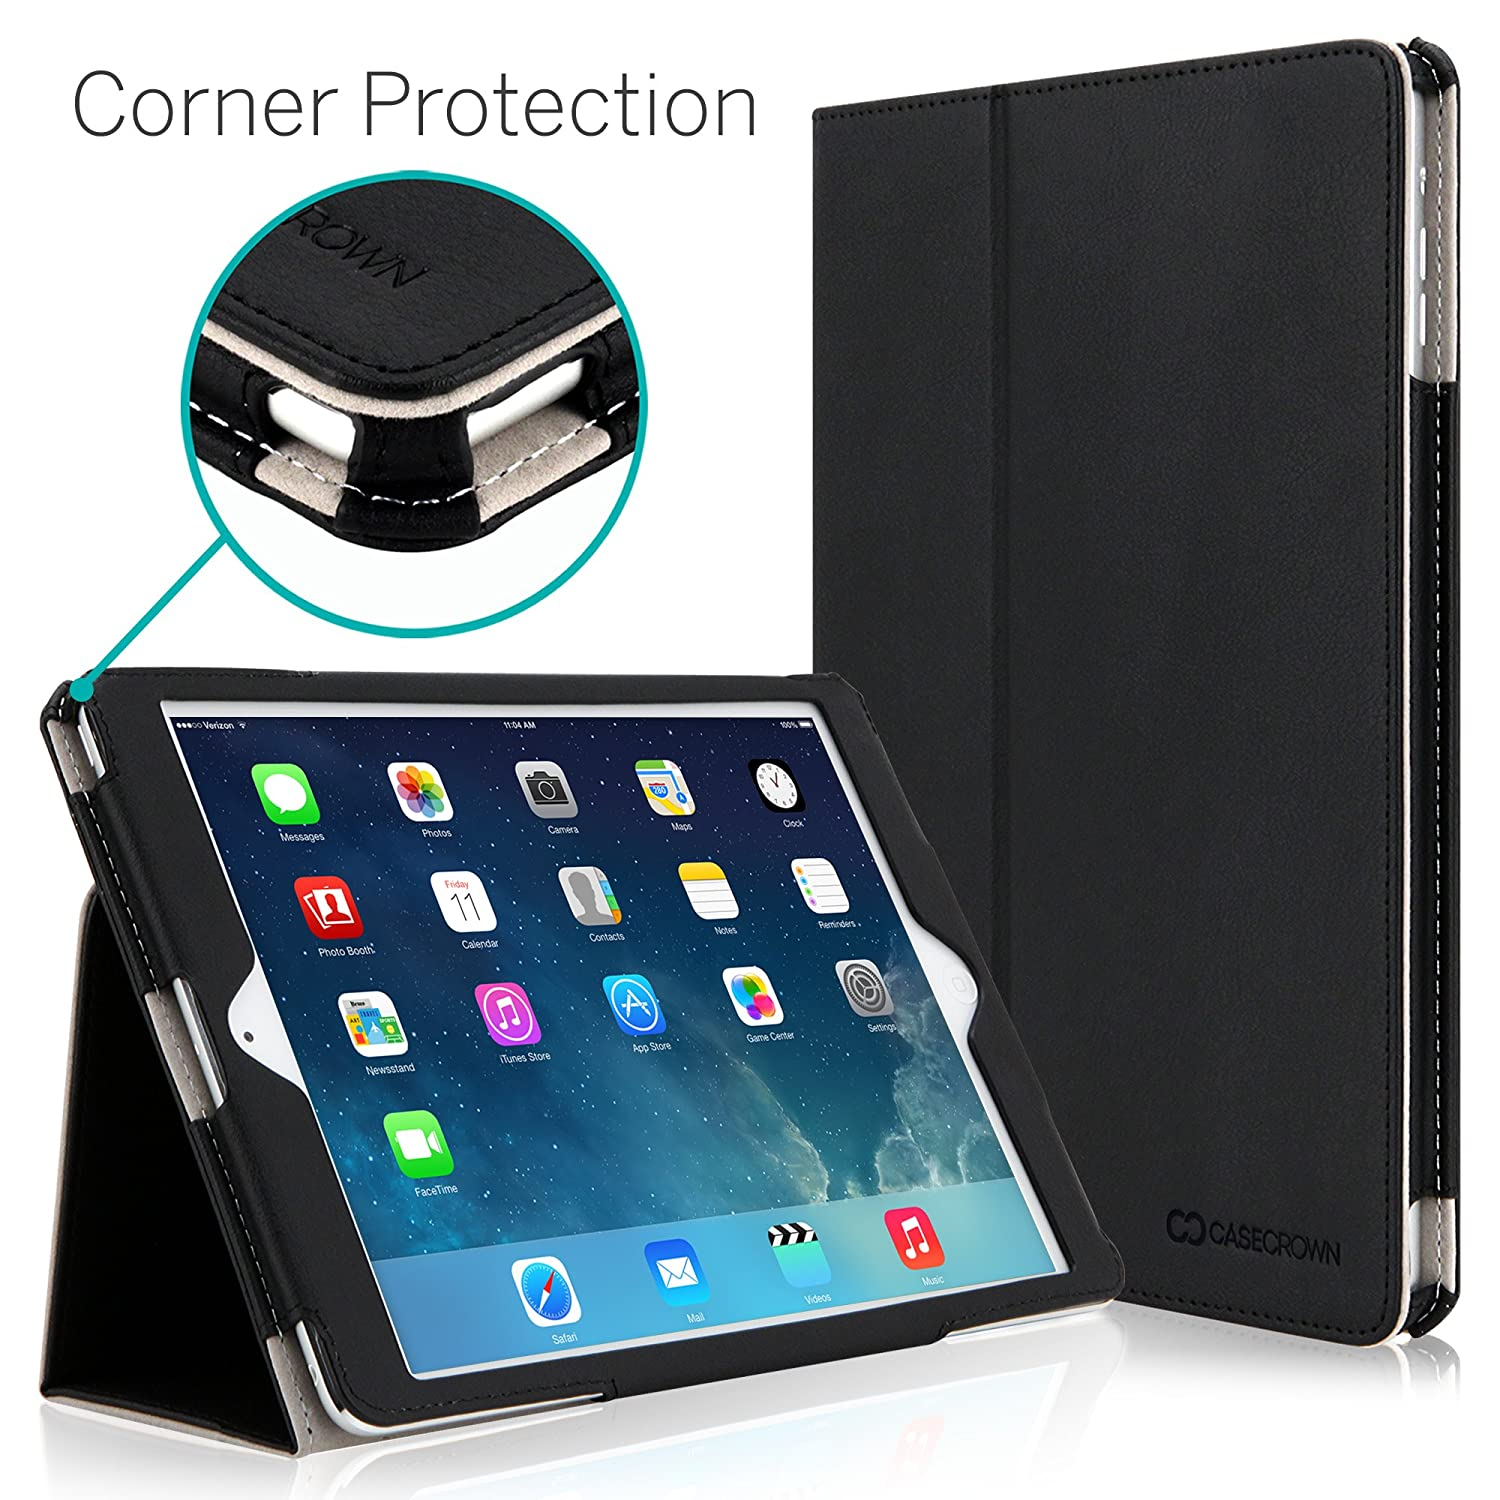 [CORNER PROTECTION] CaseCrown Bold Standby Pro Case (Black) for Apple iPad Air $16.19